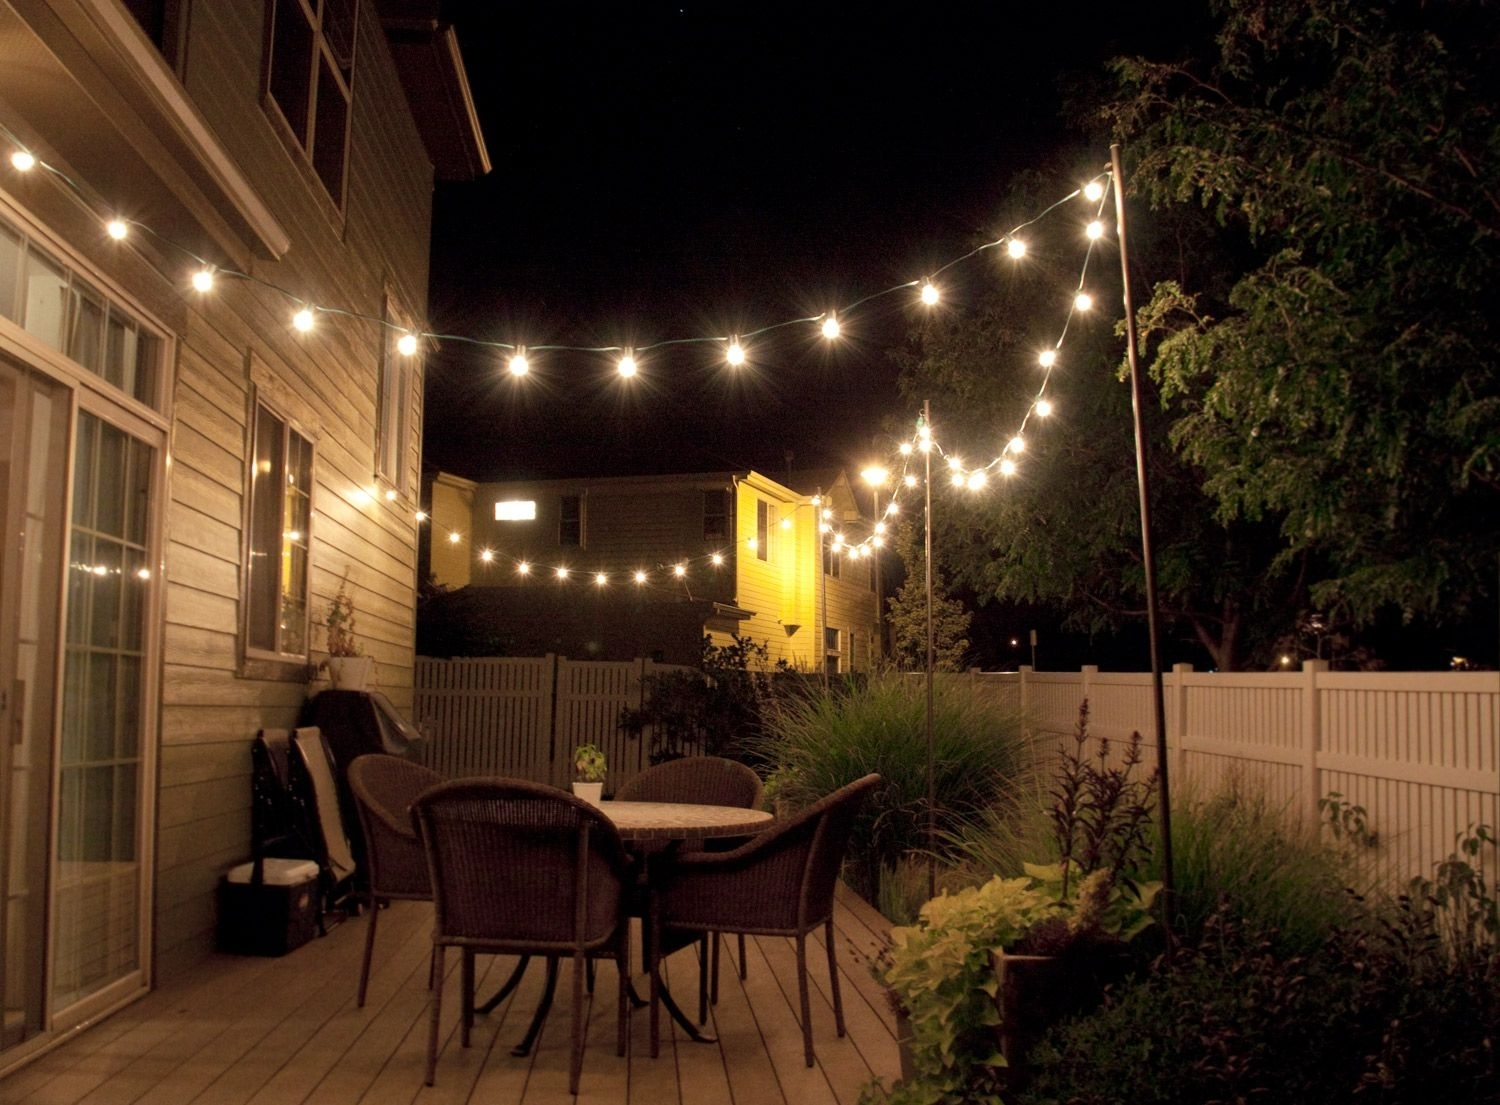 How To Make Inexpensive Poles To Hang String Lights On – Café Style In Outdoor Hanging Fairy Lights (#8 of 15)